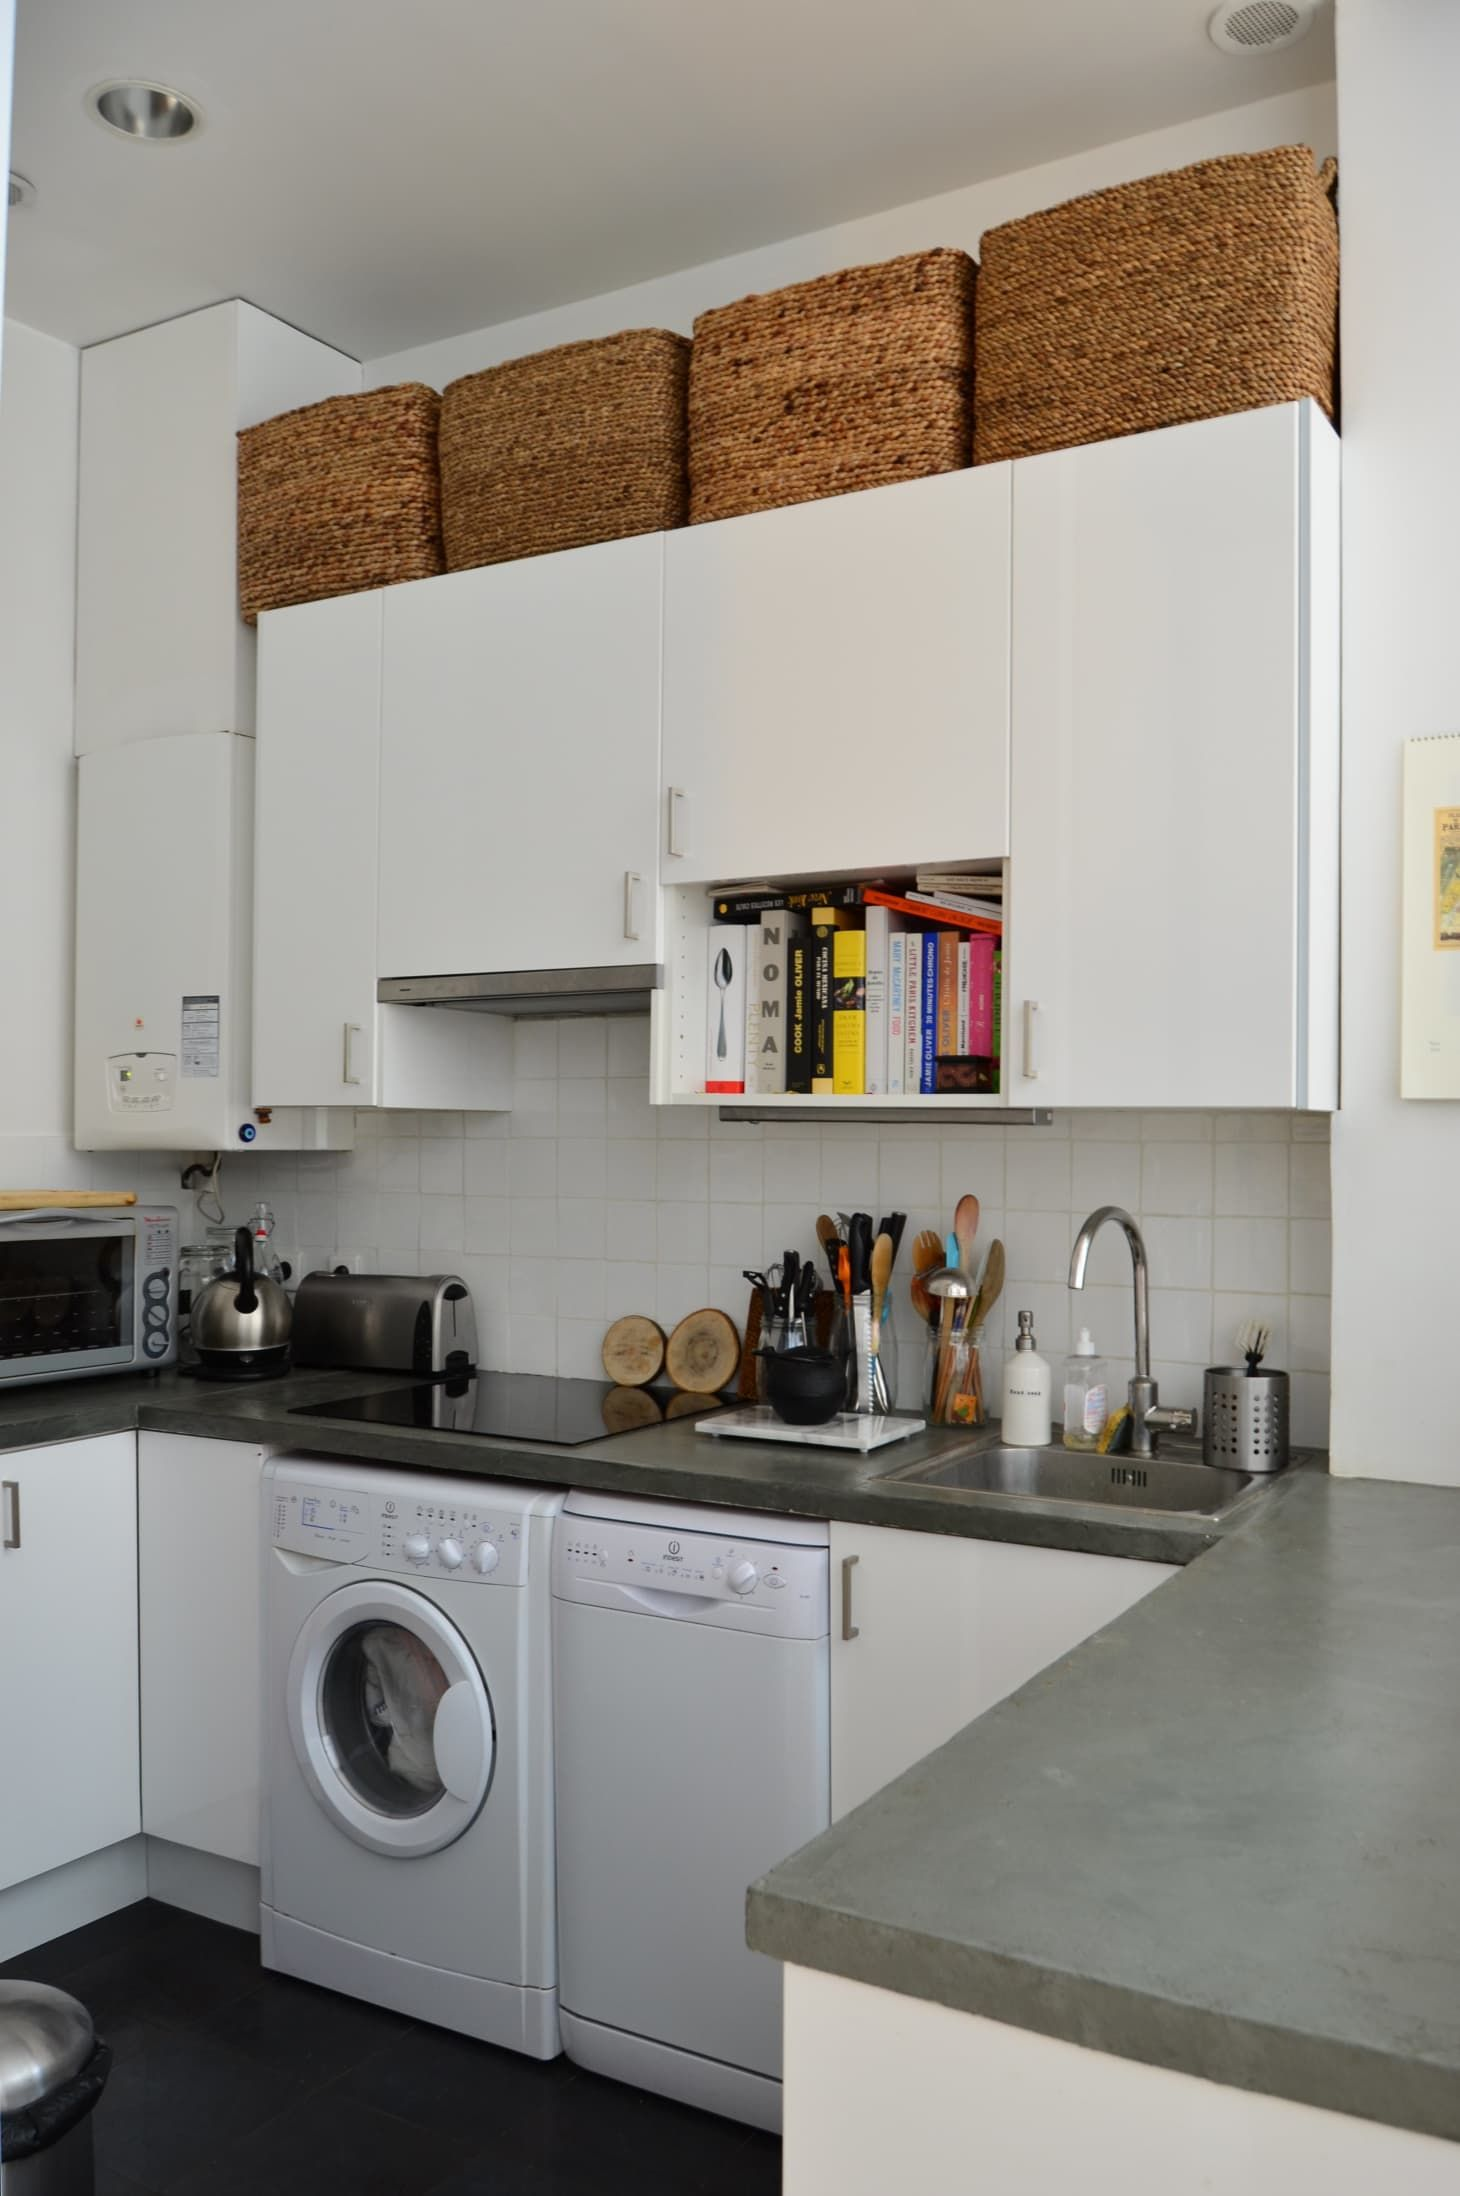 9 Ways To Make Existing Storage Cabinets More Space ...